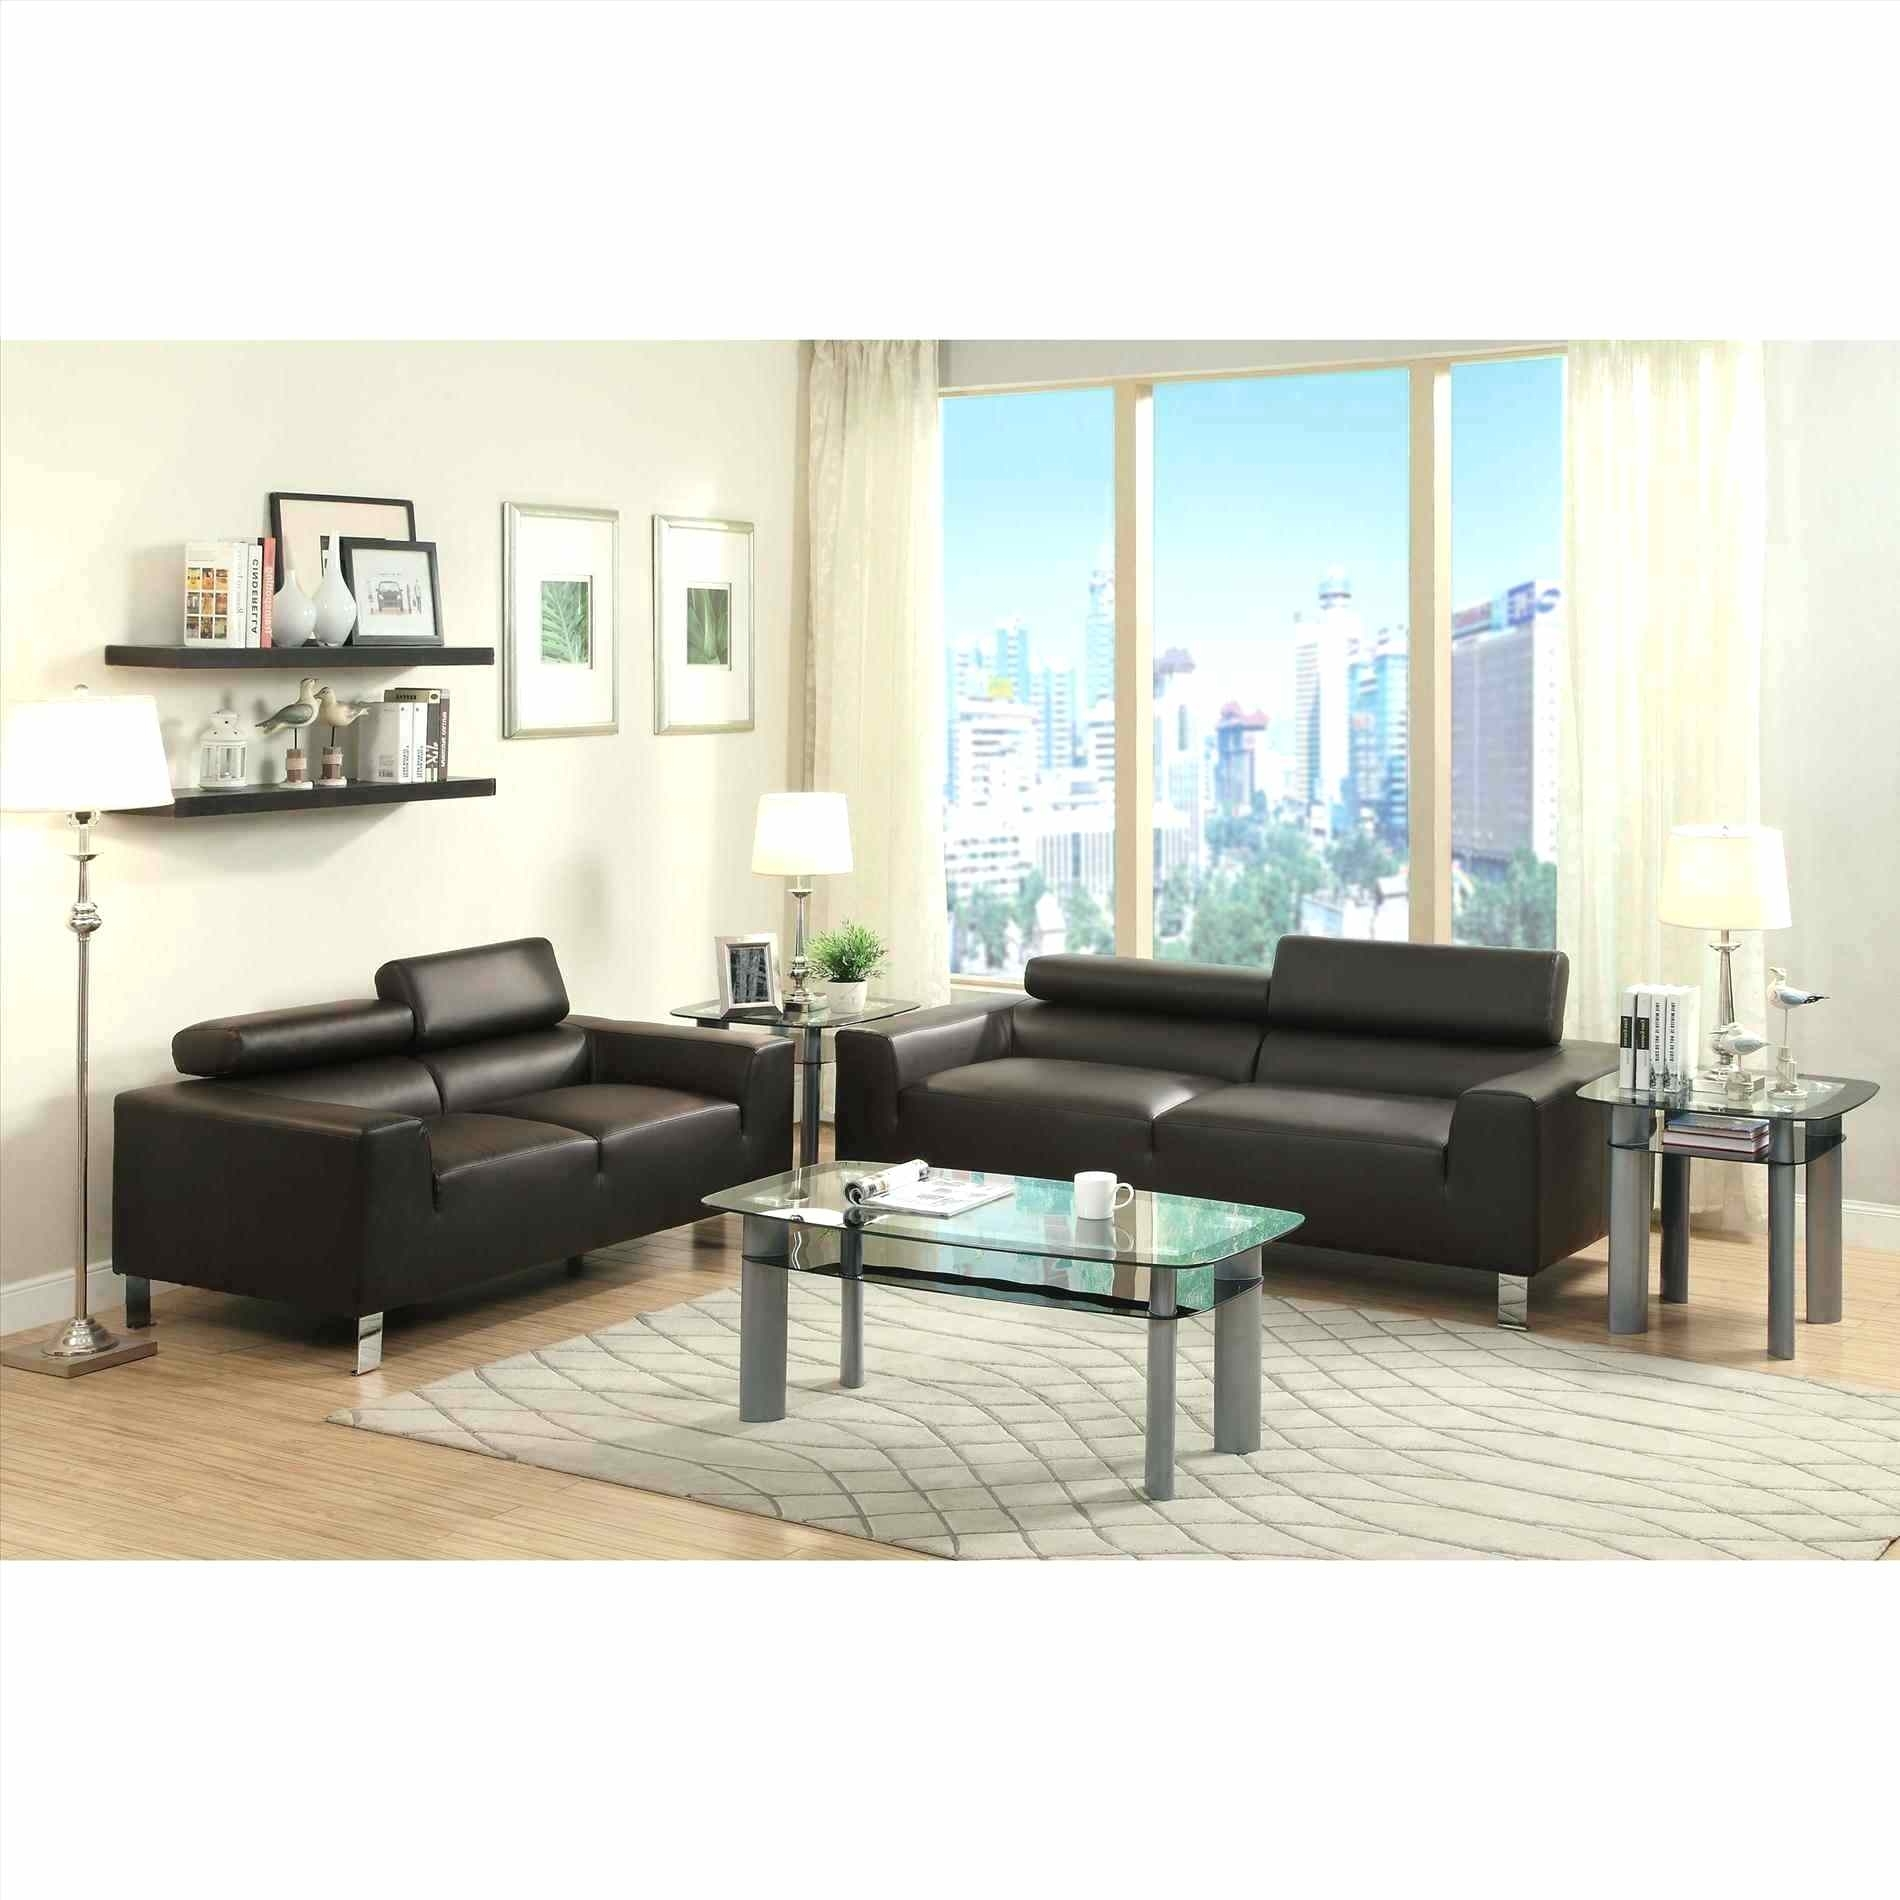 Modern Furniture Woodsville Nh Design Jobs Or Lovely Sectional Sofas Within Nh Sectional Sofas (View 10 of 10)